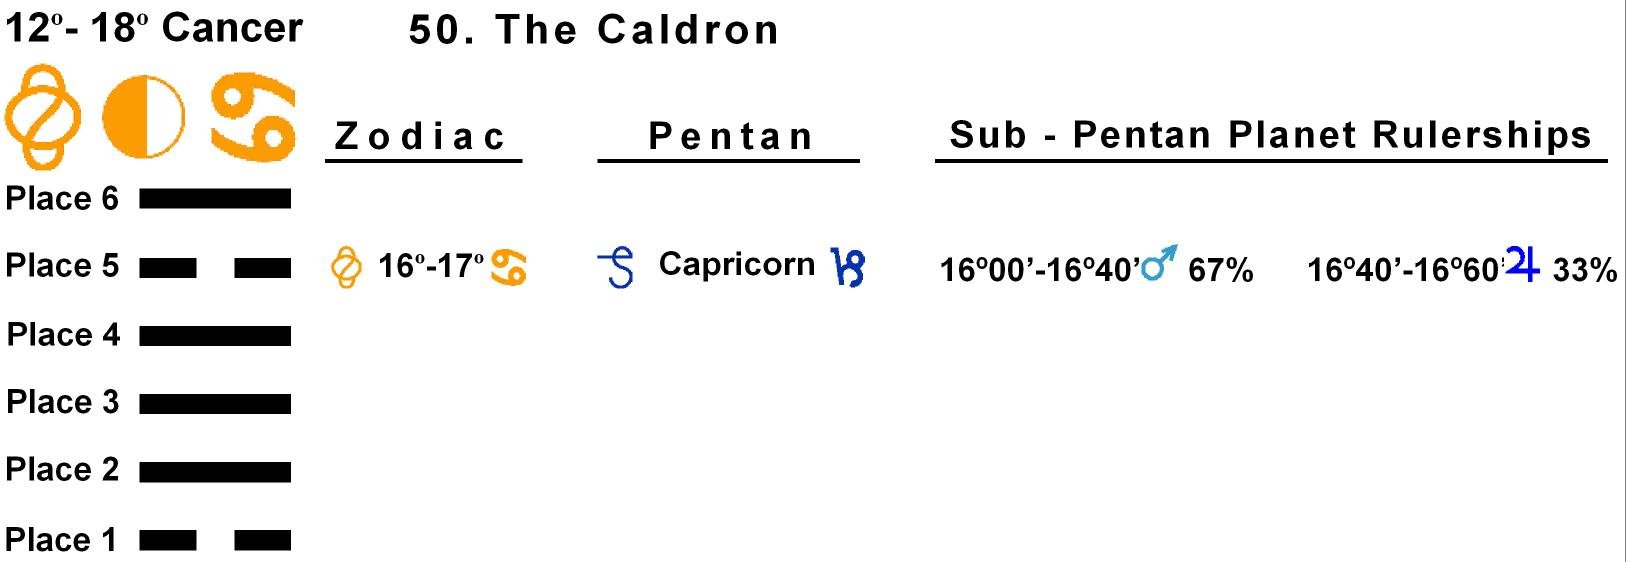 Pent-lines-04CA 16-17 Hx-50 The Caldron